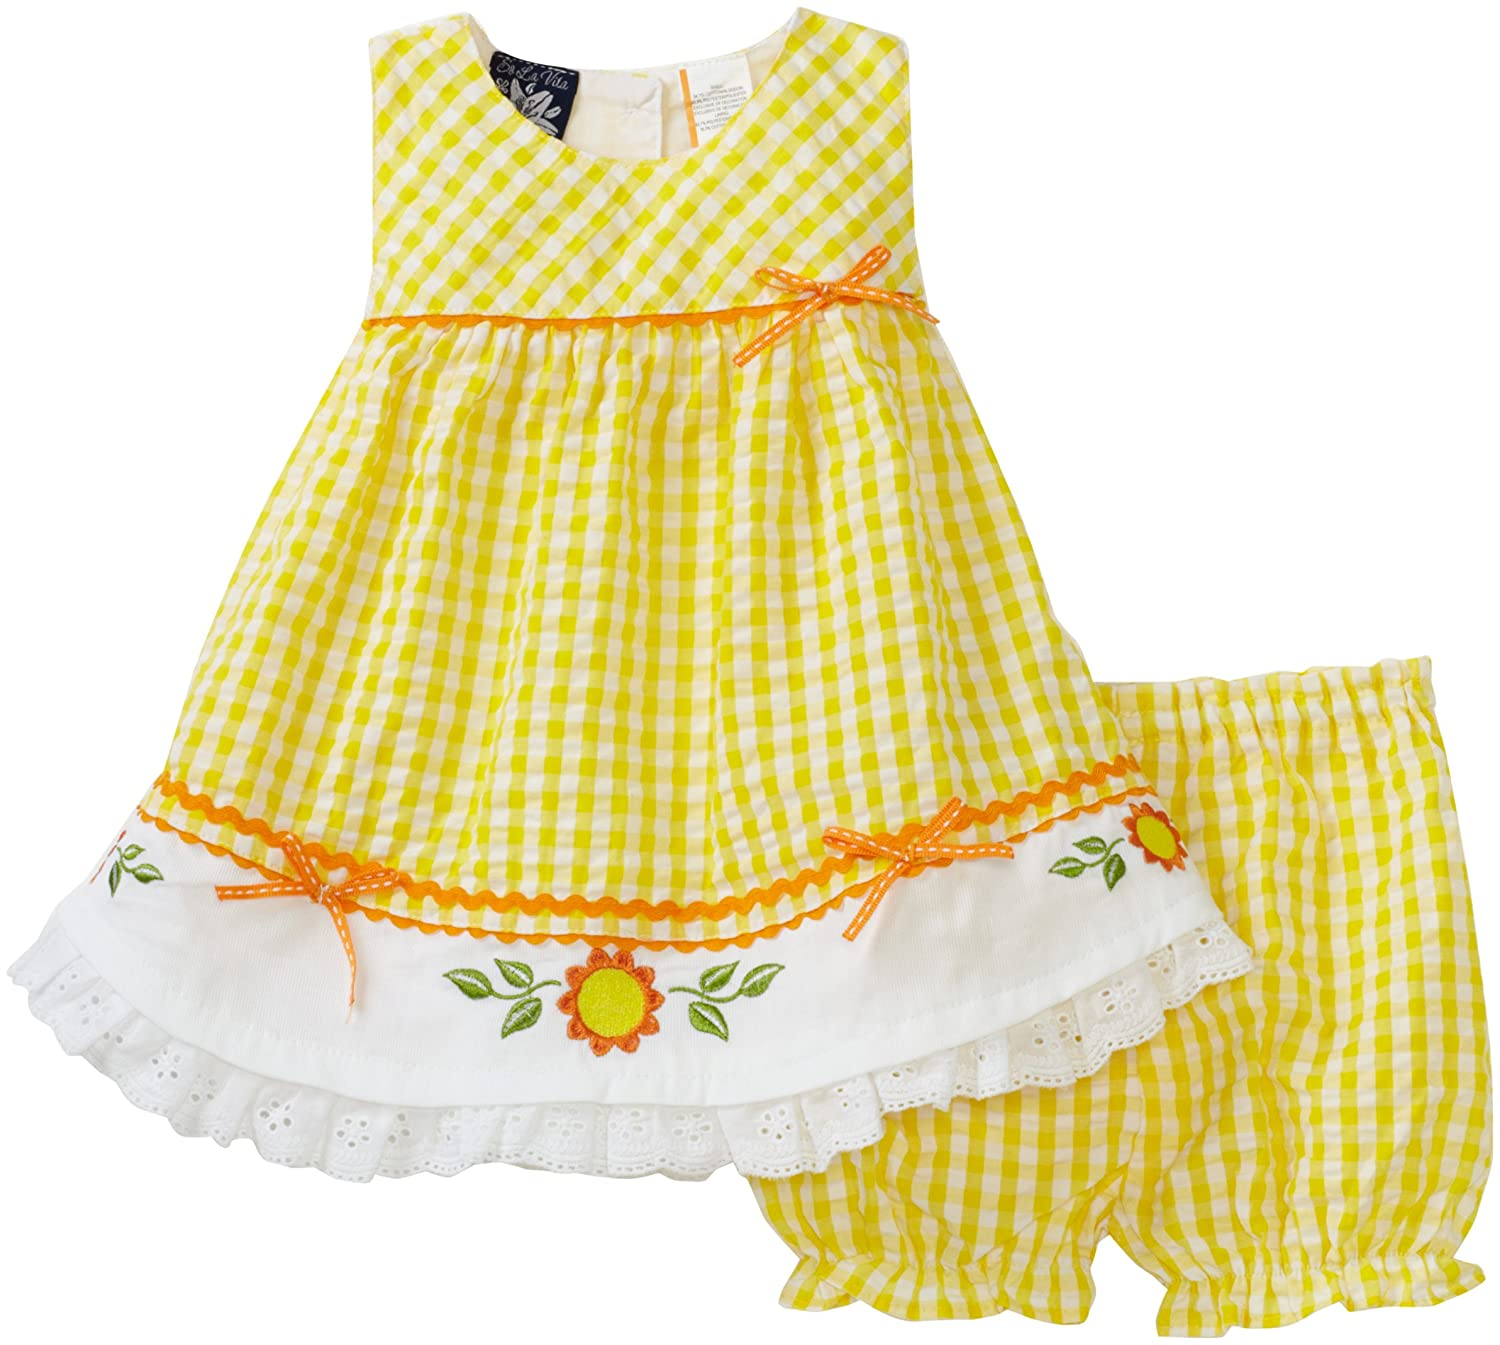 This beautiful babydoll dress is perfect to wear to a gender-neutral baby shower. The cute little bow will draw attention to your best feature and the party's guest of honor—your baby bump!